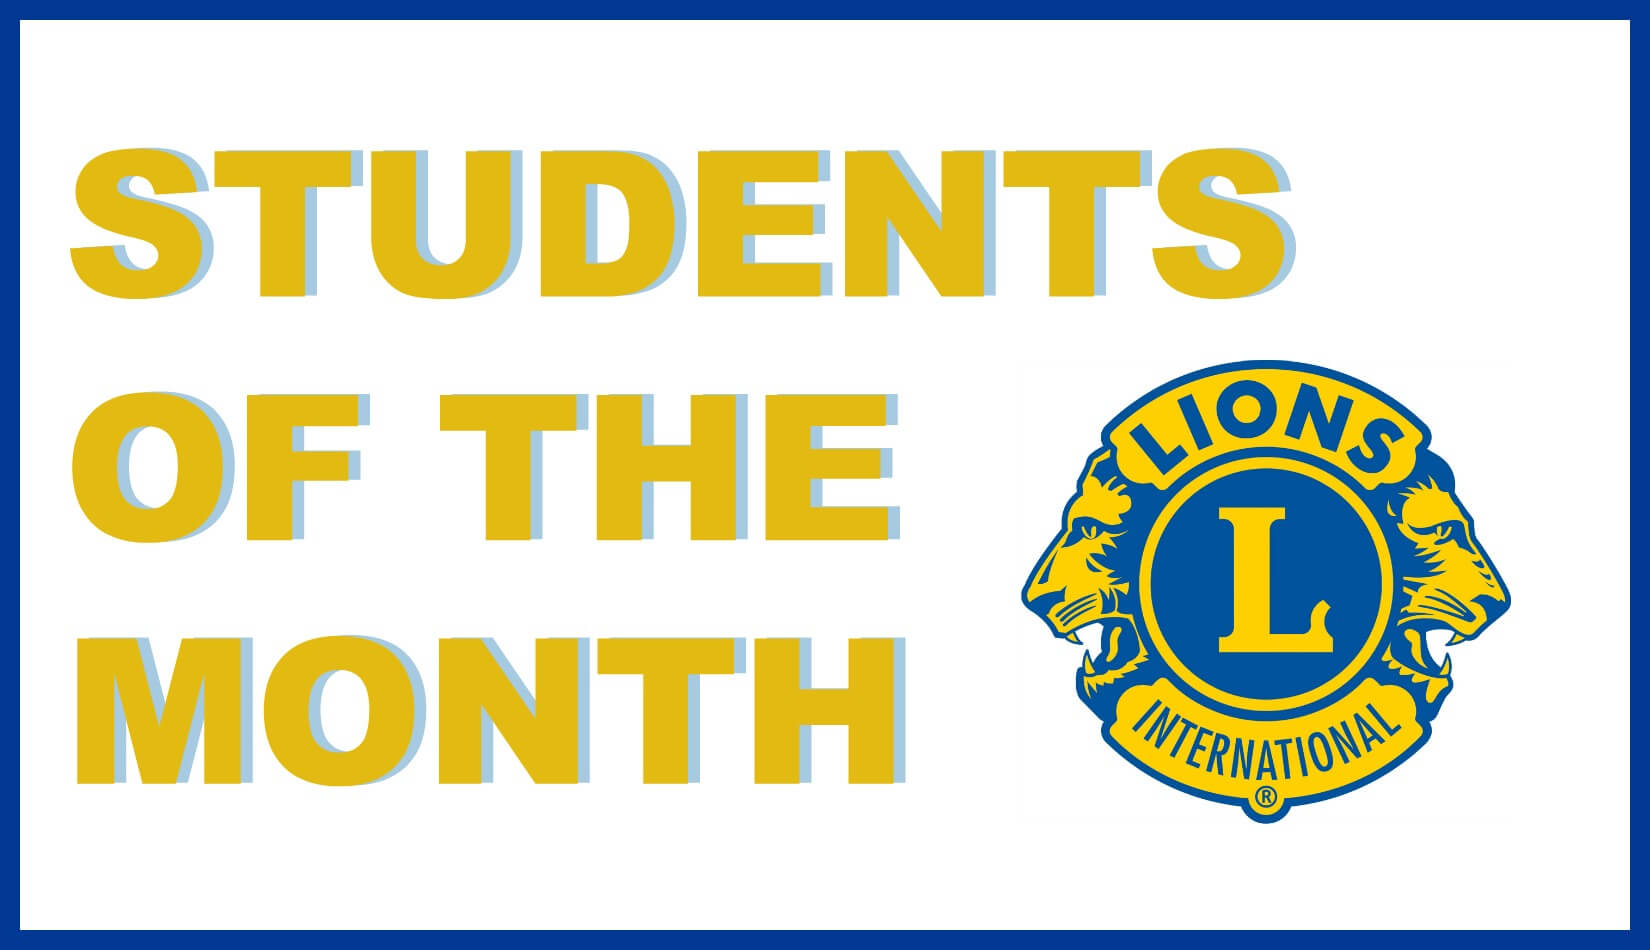 Janesville Noon Lions Club - Students of the Month